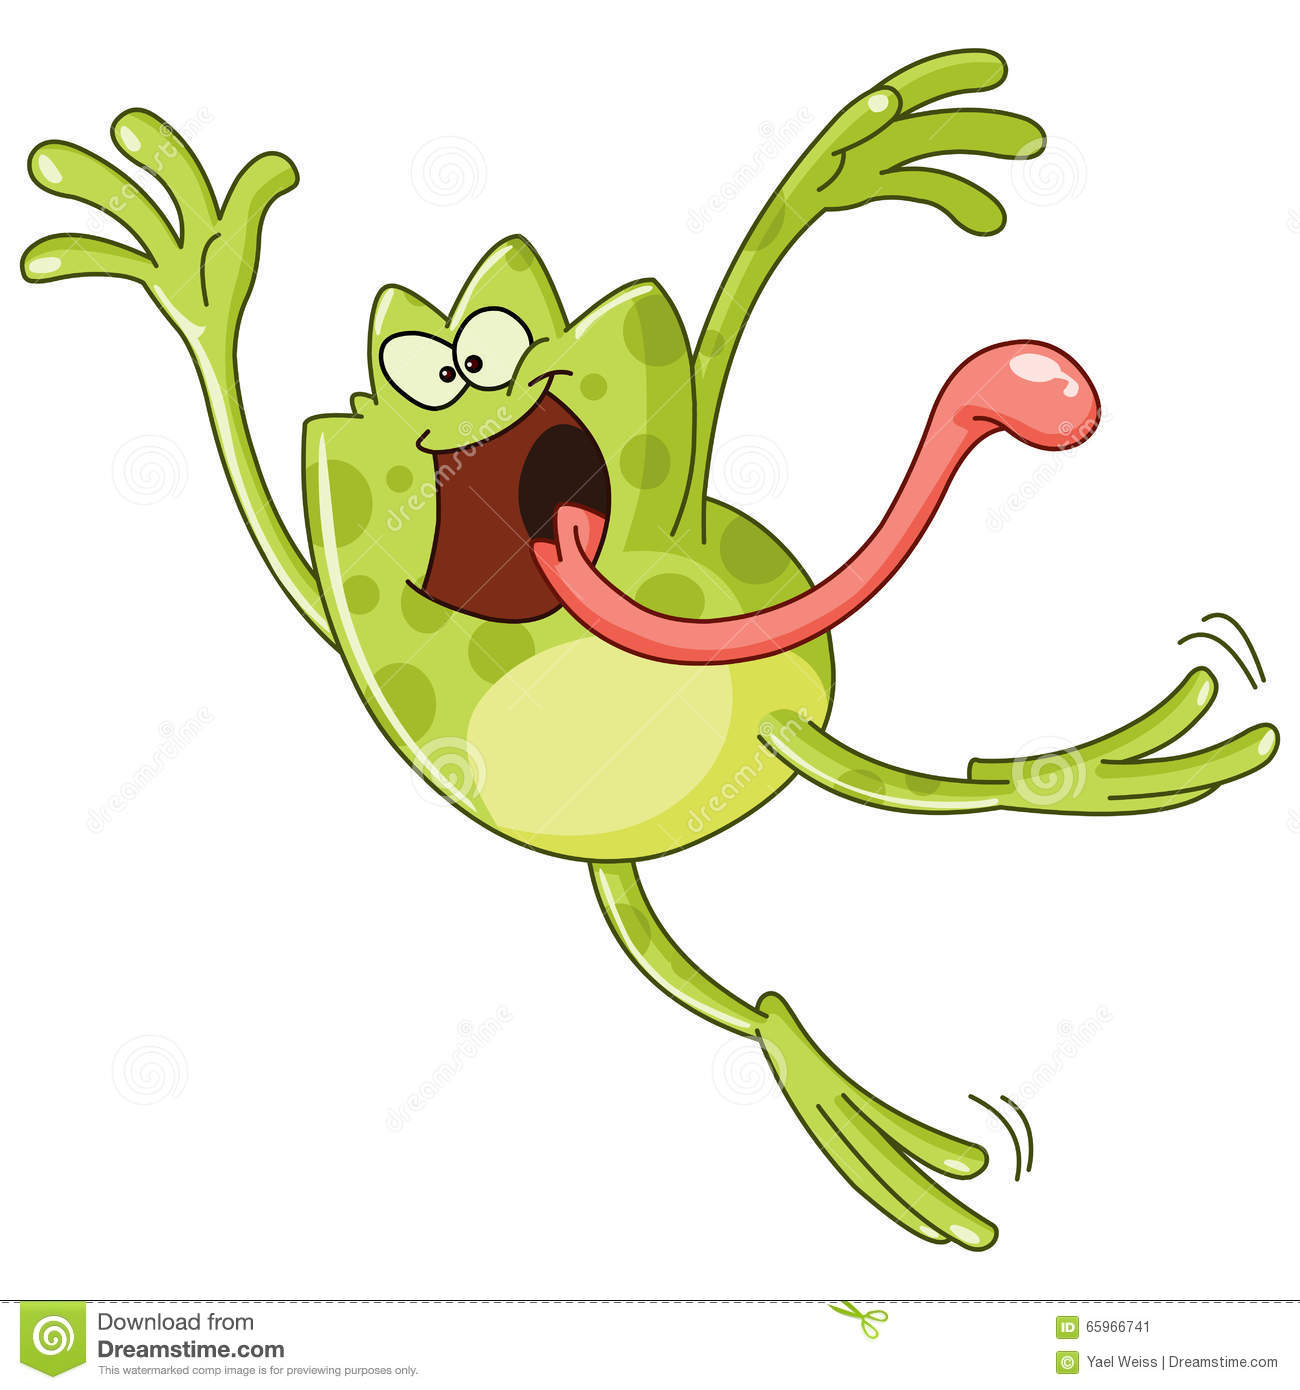 Frog Jumping Stock Vector - Image: 65966741